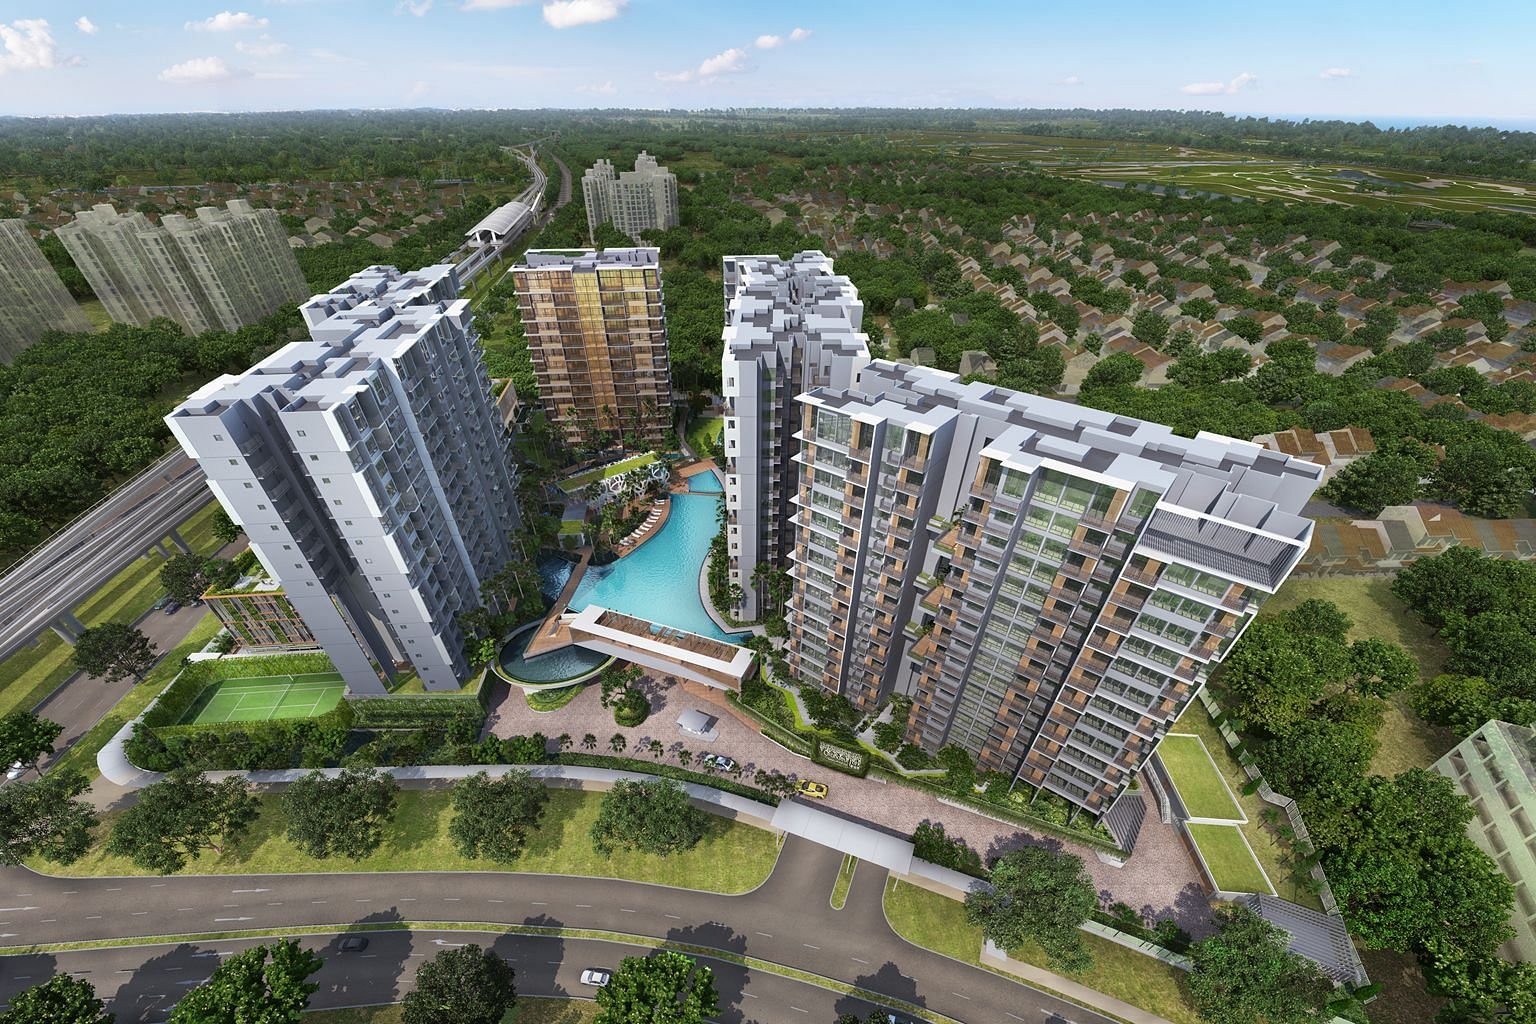 The average price of the 720-unit Grandeur Park Residences is about $1,350 per square foot. Its location near Tanah Merah MRT station proved to be one of the key draws of the development.